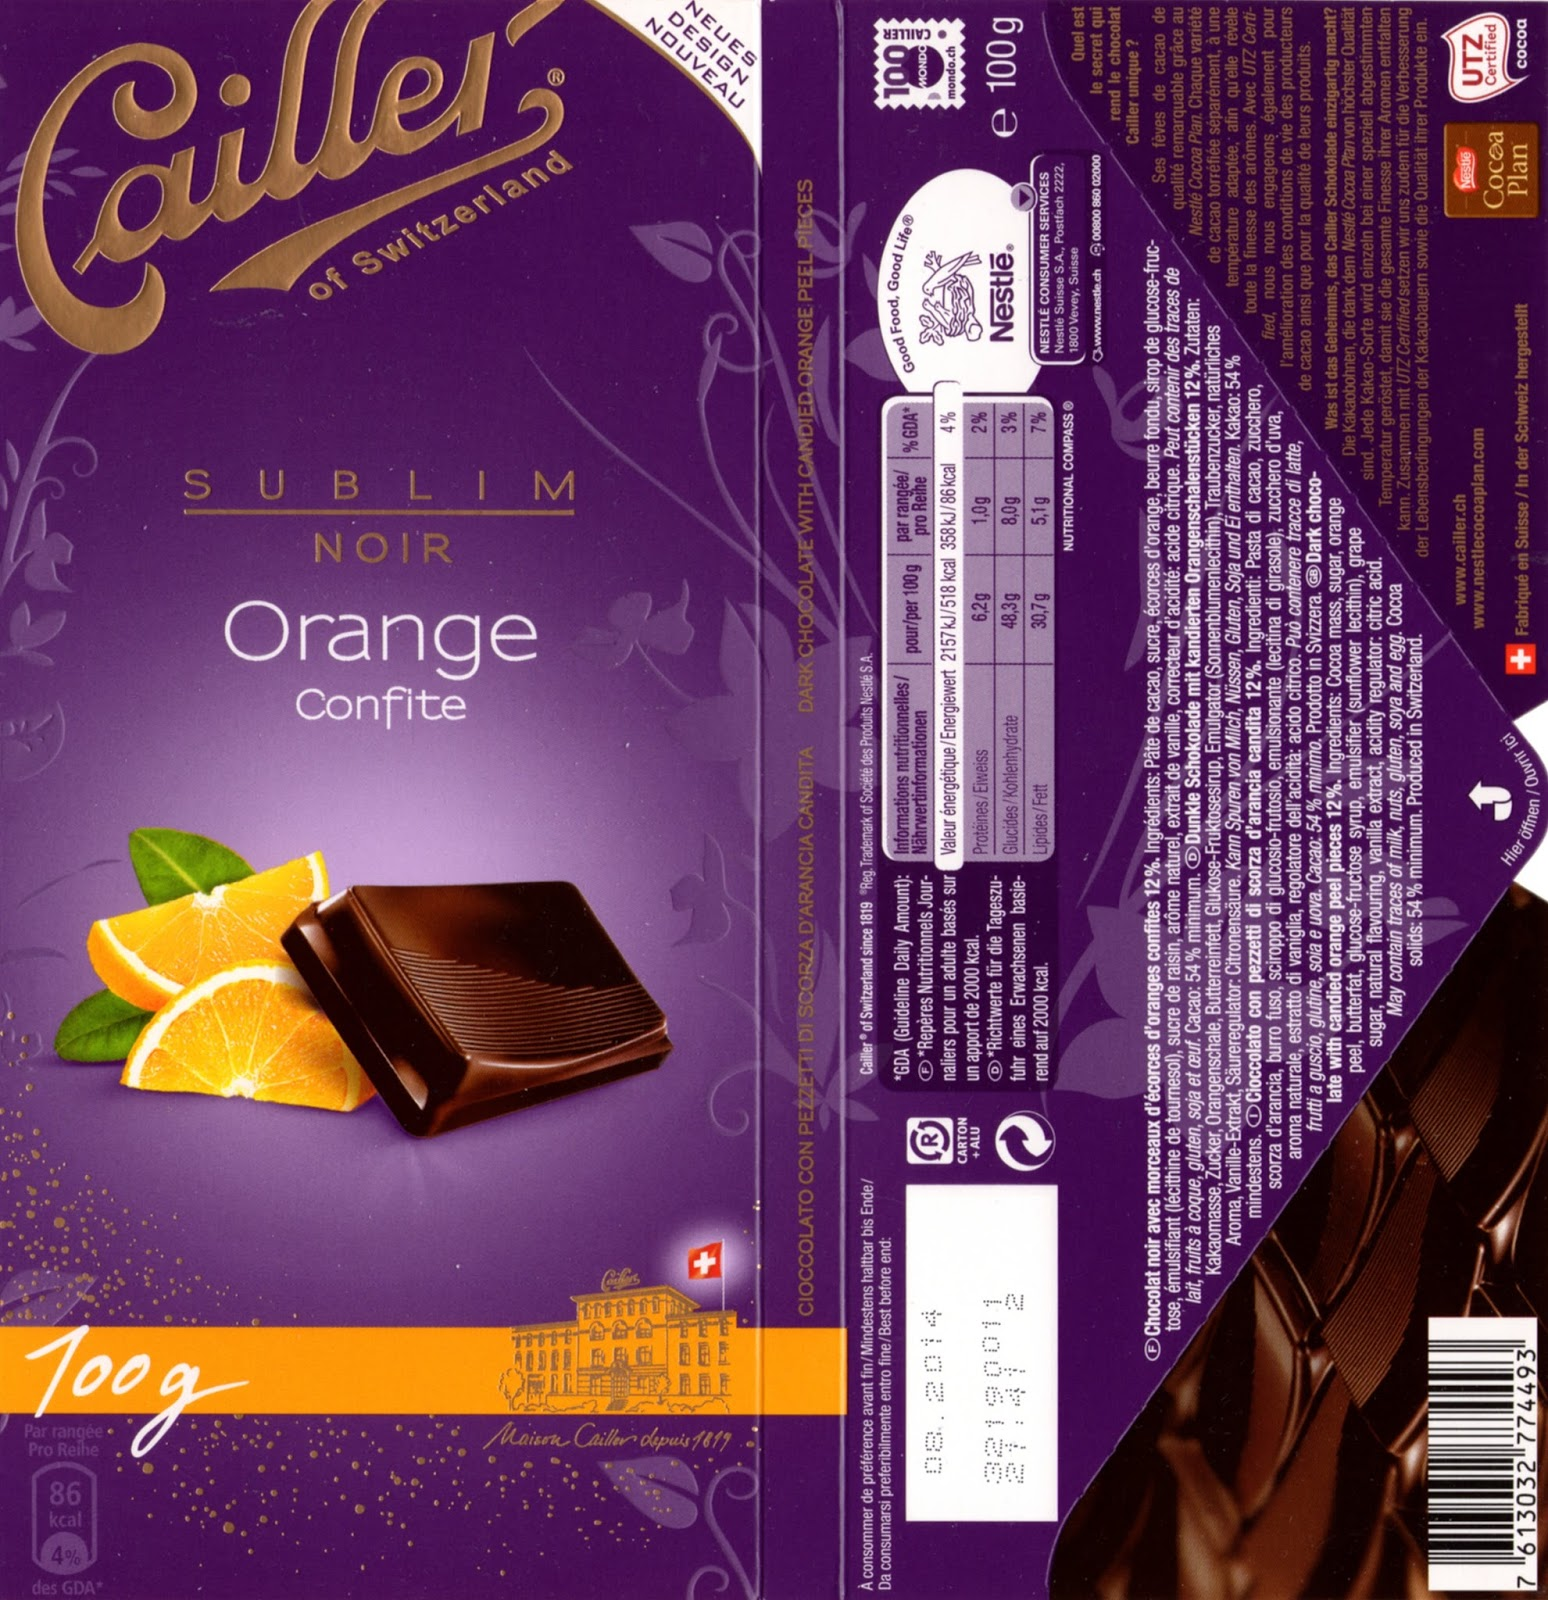 tablette de chocolat noir gourmand cailler sublim noir orange confite